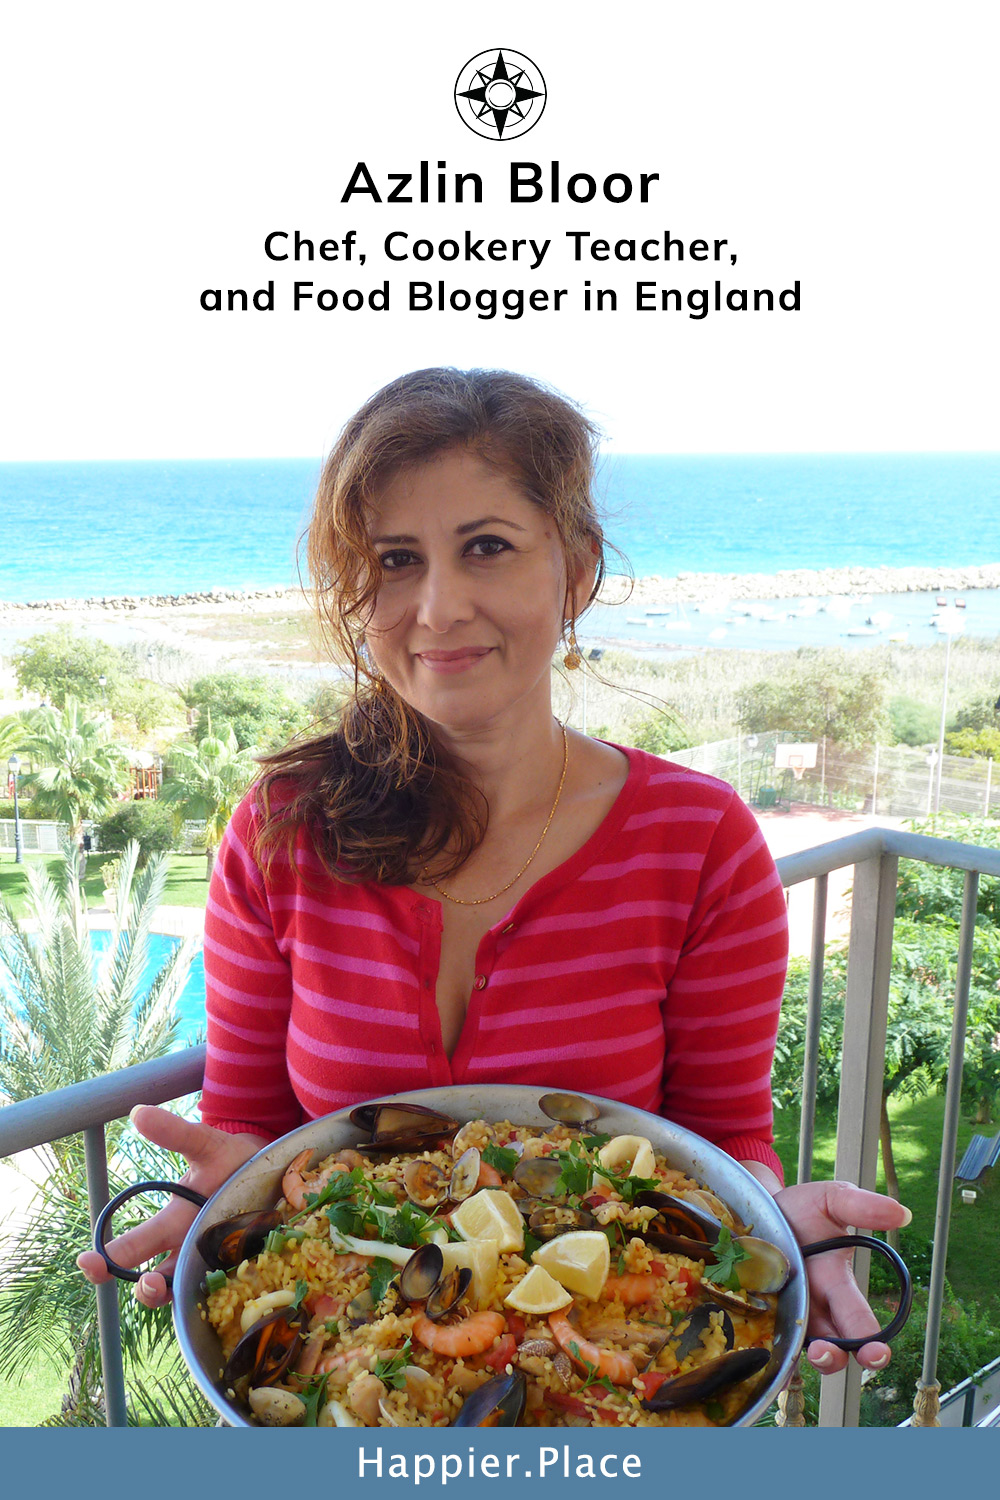 Azlin Bloor (Chef, Cookery Teacher, and Food Blogger in England)